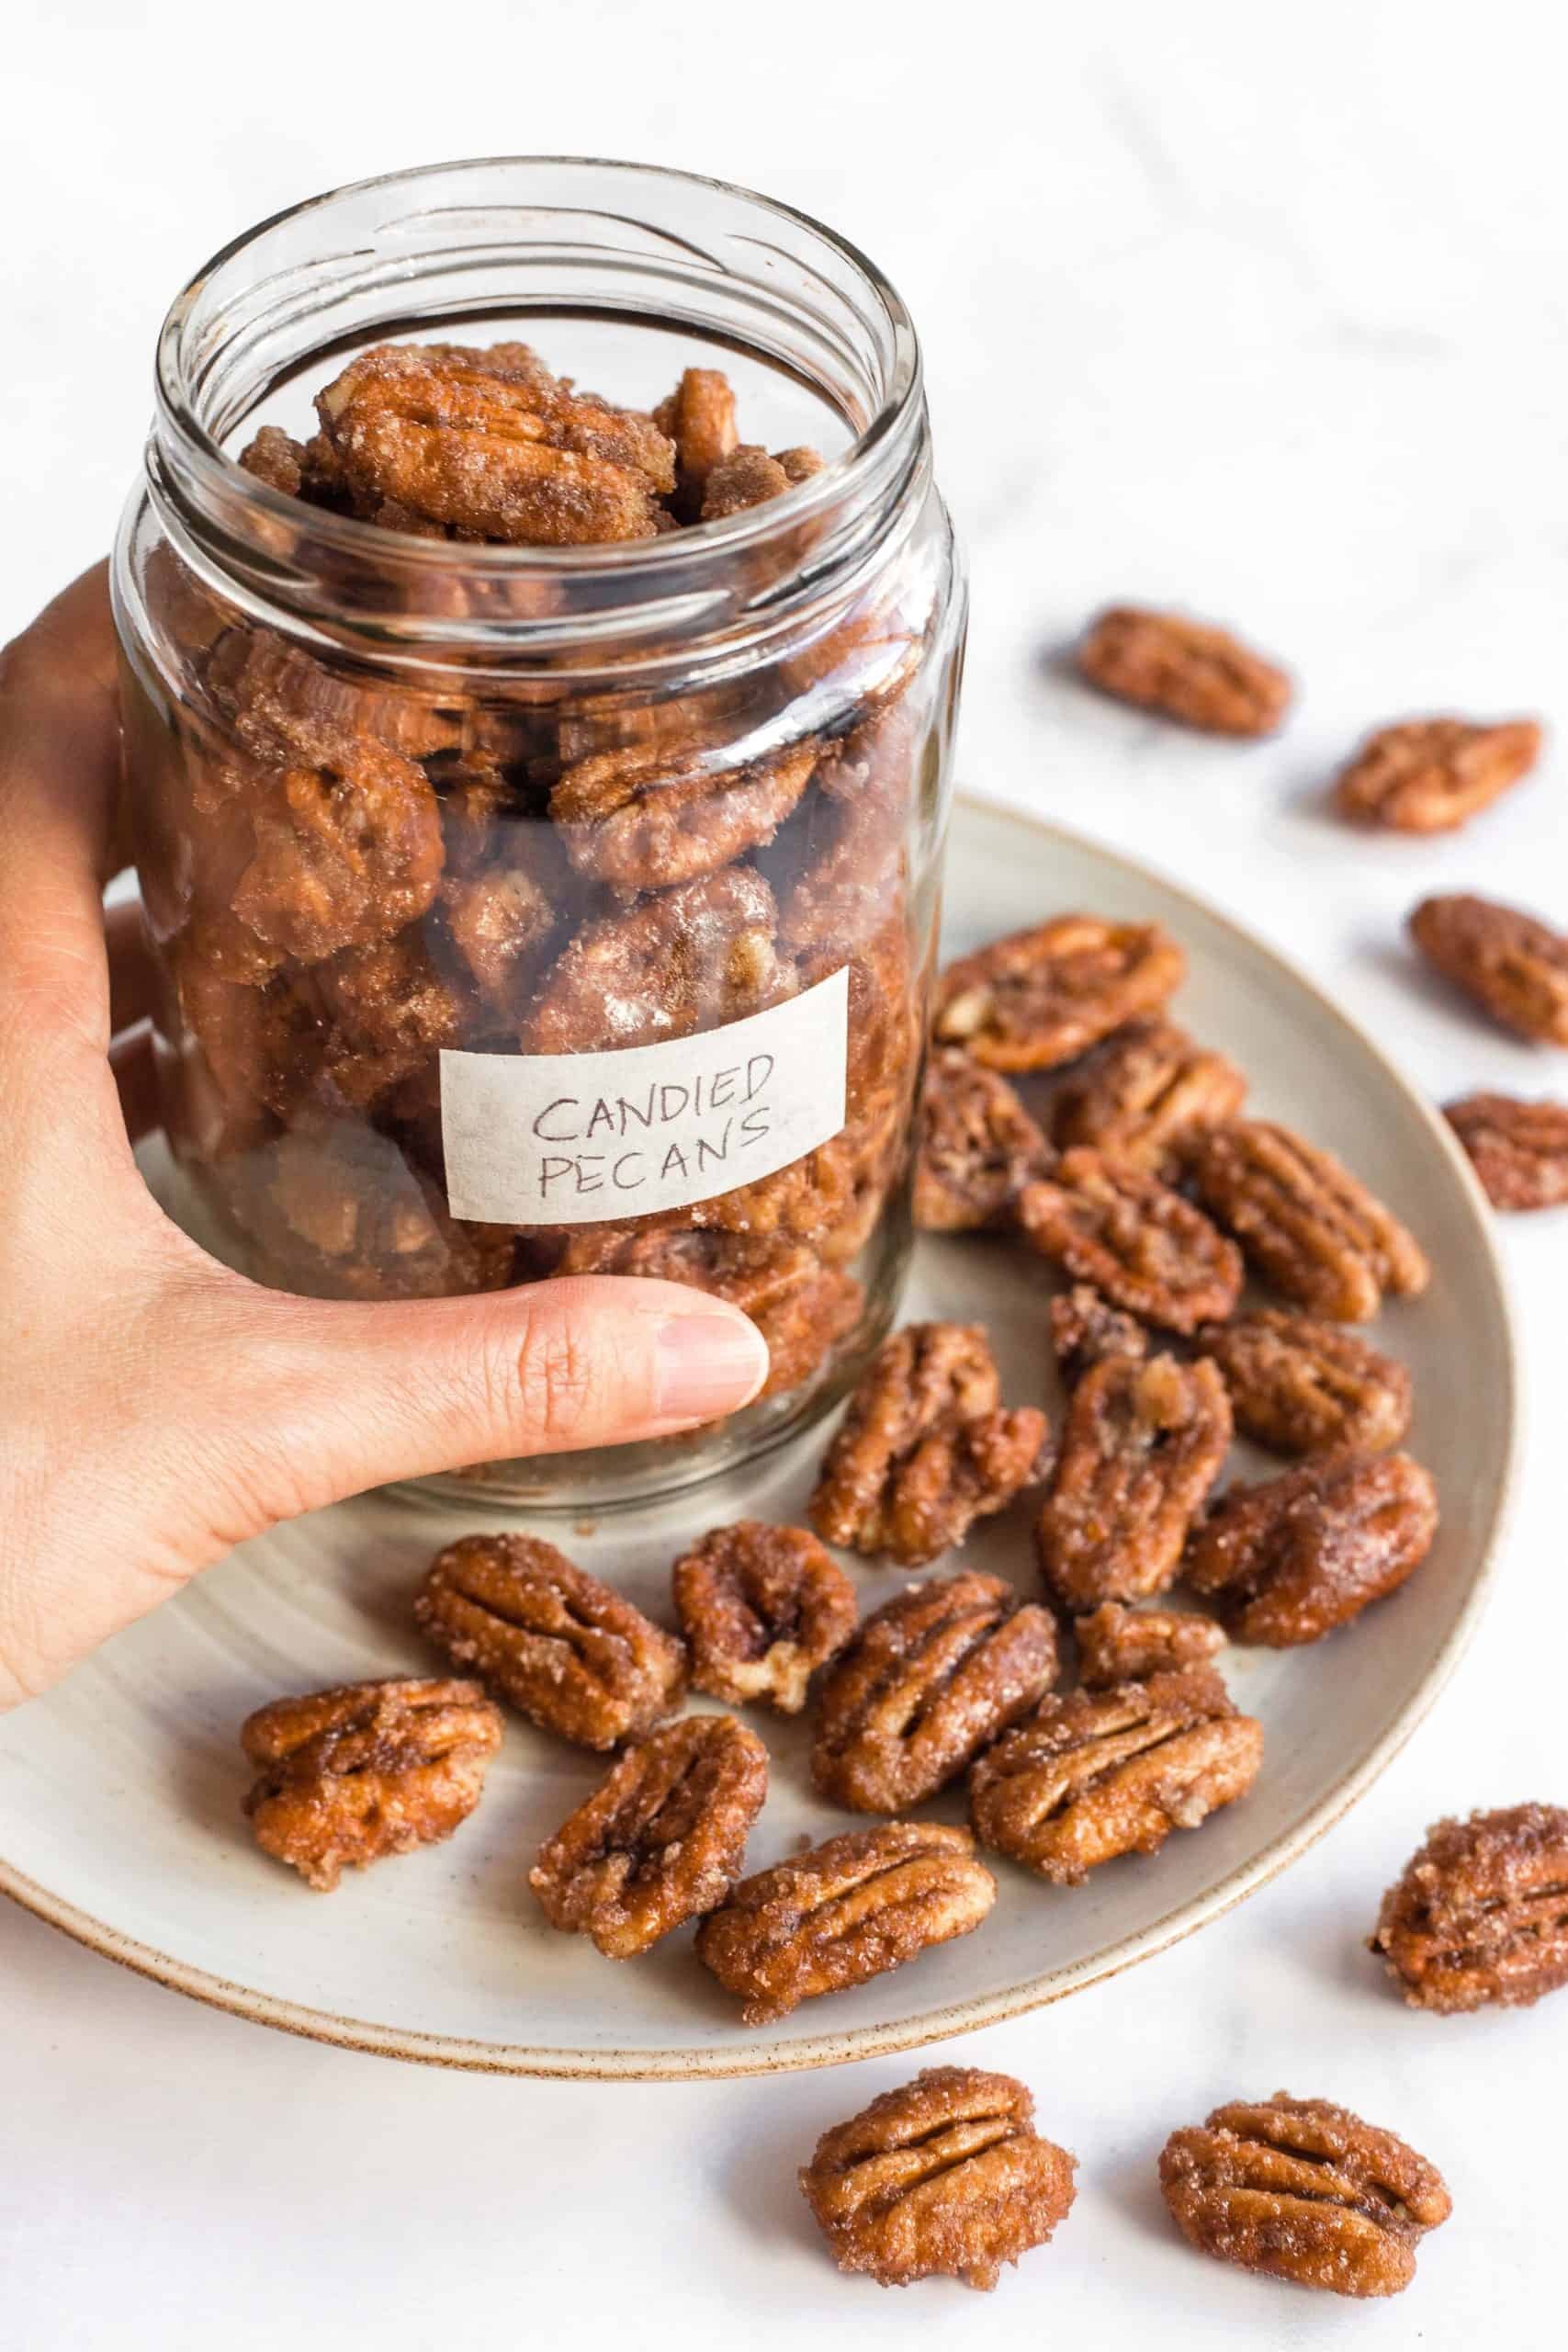 Holding a jar full of candied pecans.